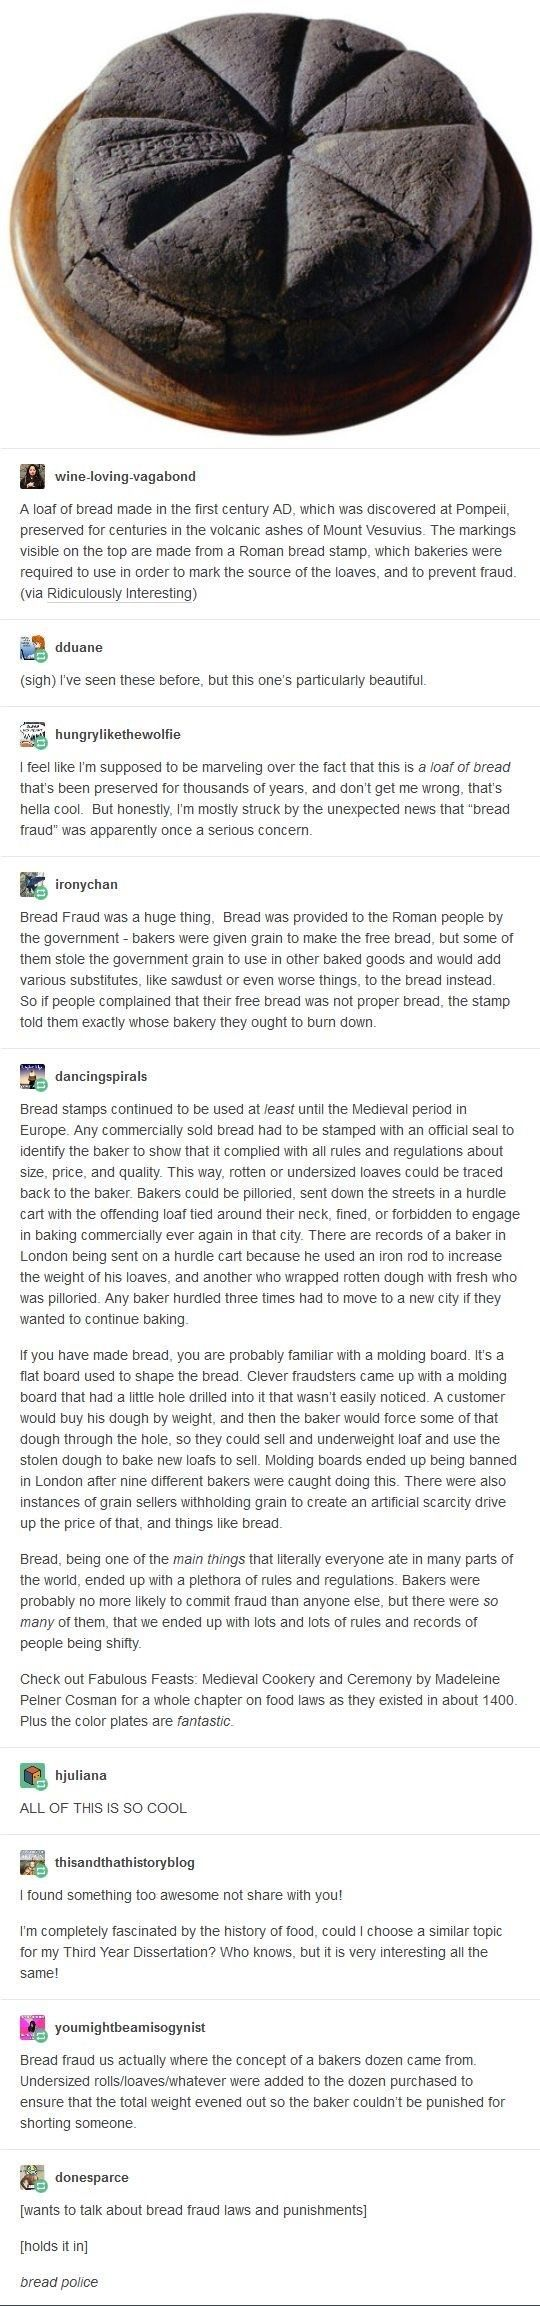 19 Fascinating & Funny Tumblr Posts About History